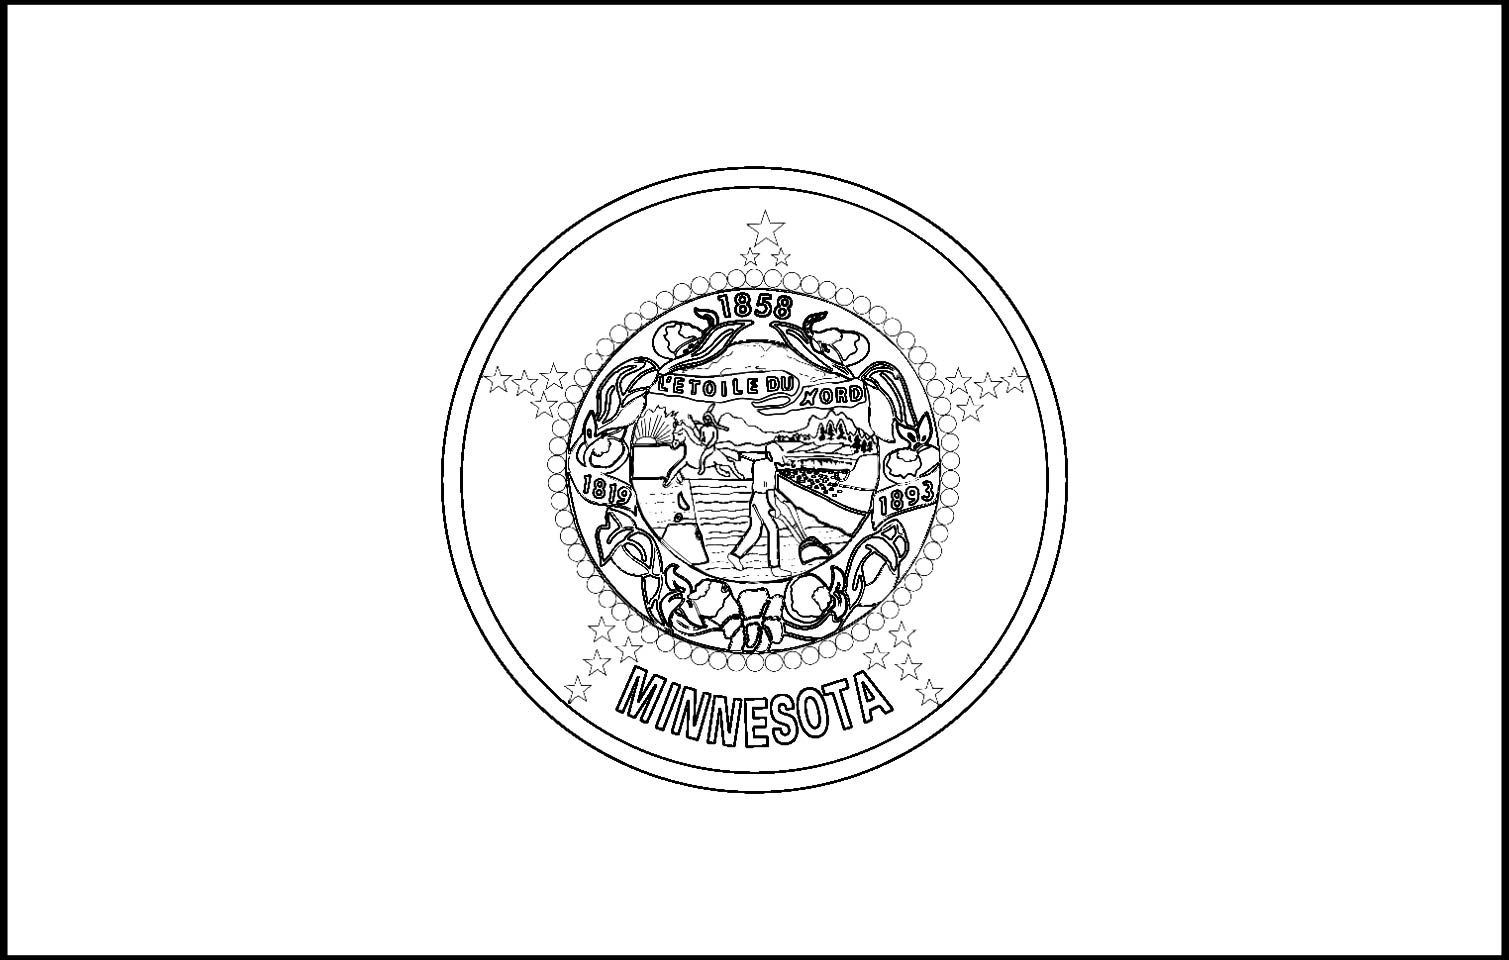 minnesota state flag coloring page - mn state flag coloring page coloring pages